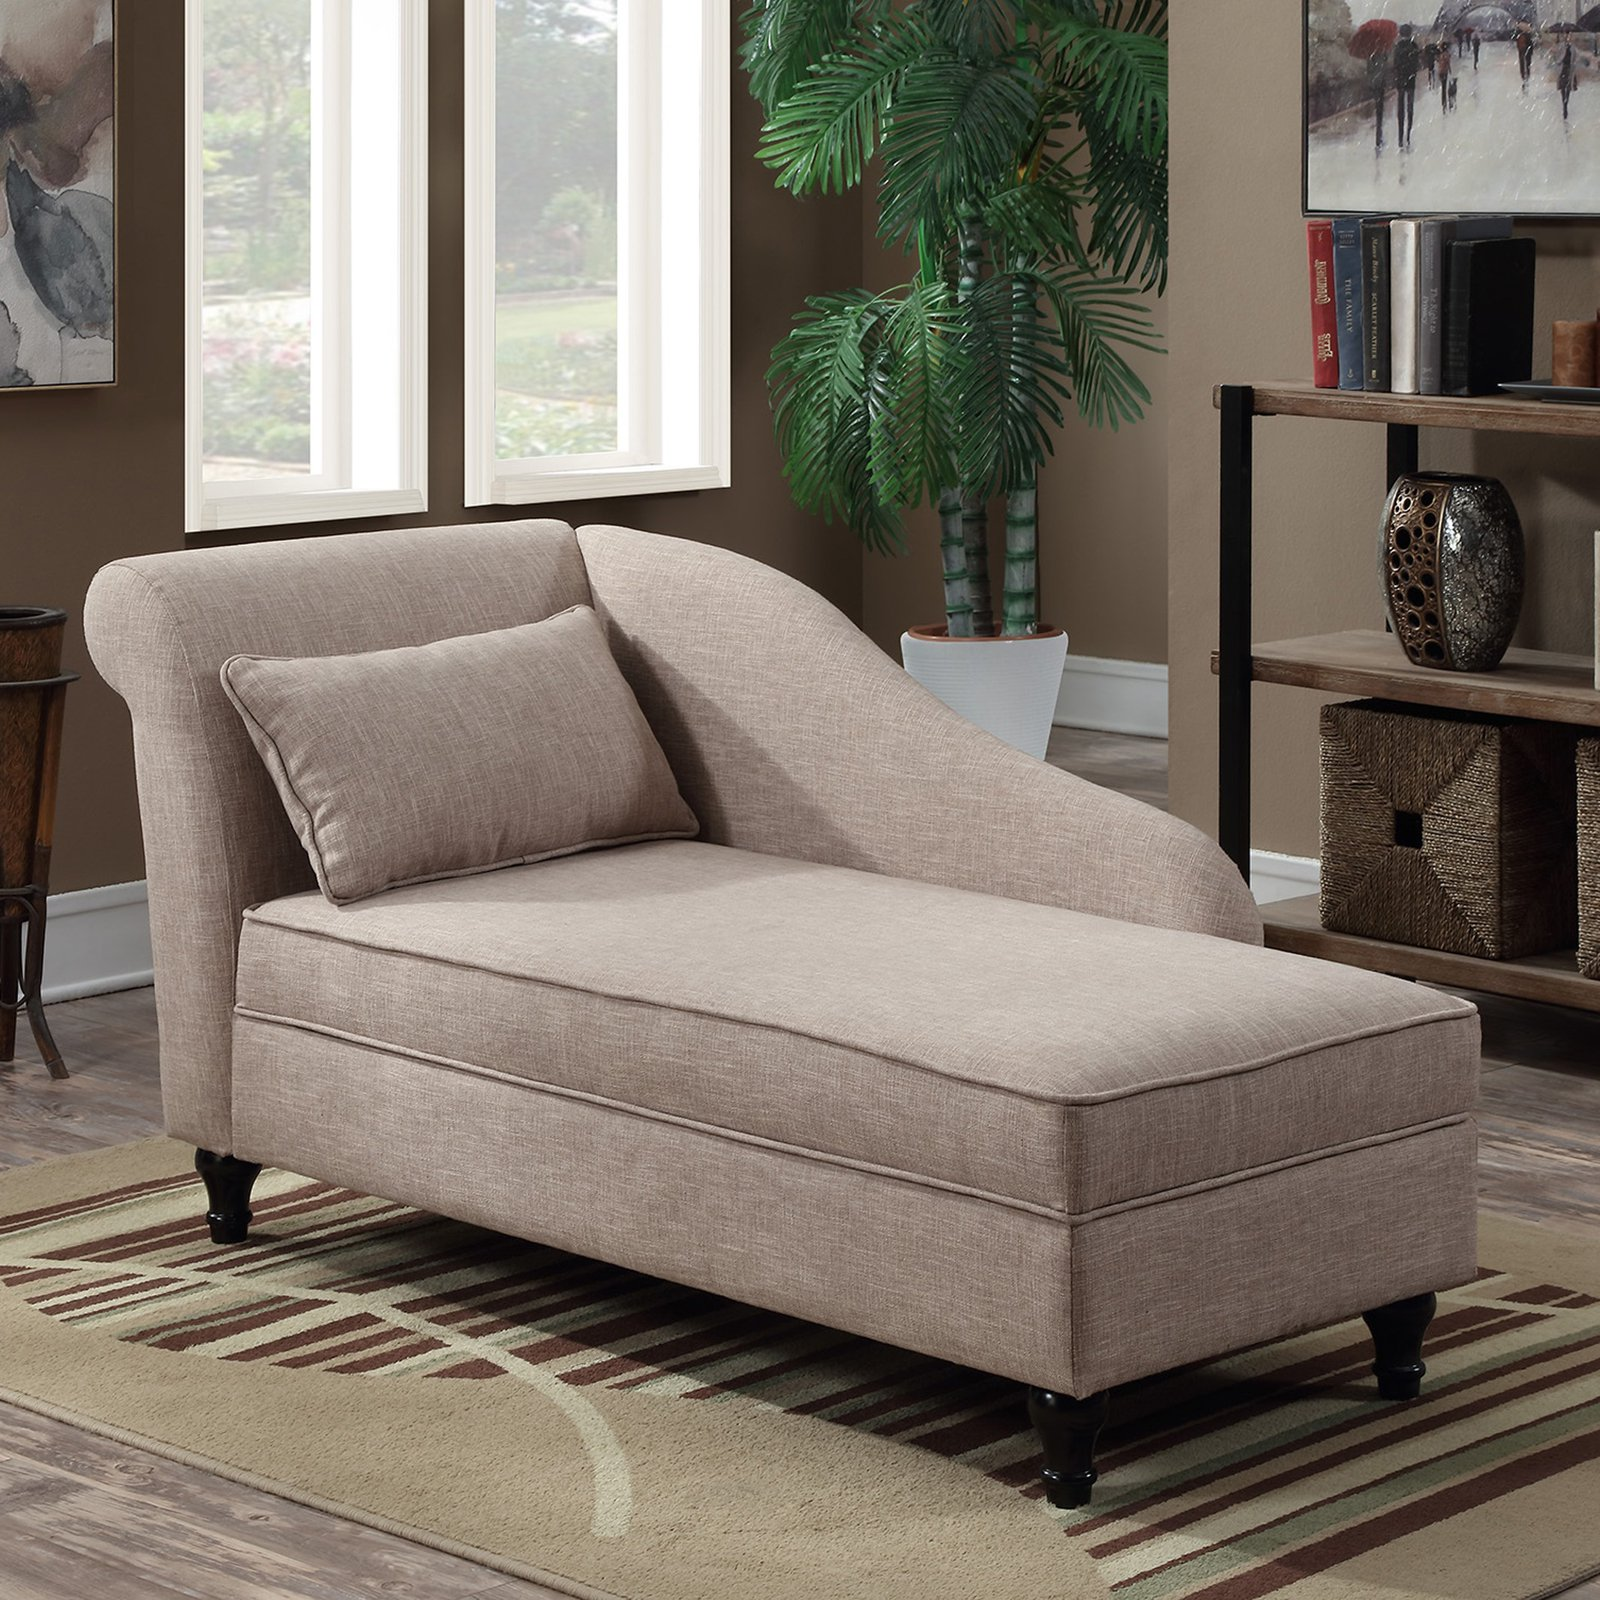 Convenience Concepts Designs4Comfort Cleo Lounge Ottoman with Storage